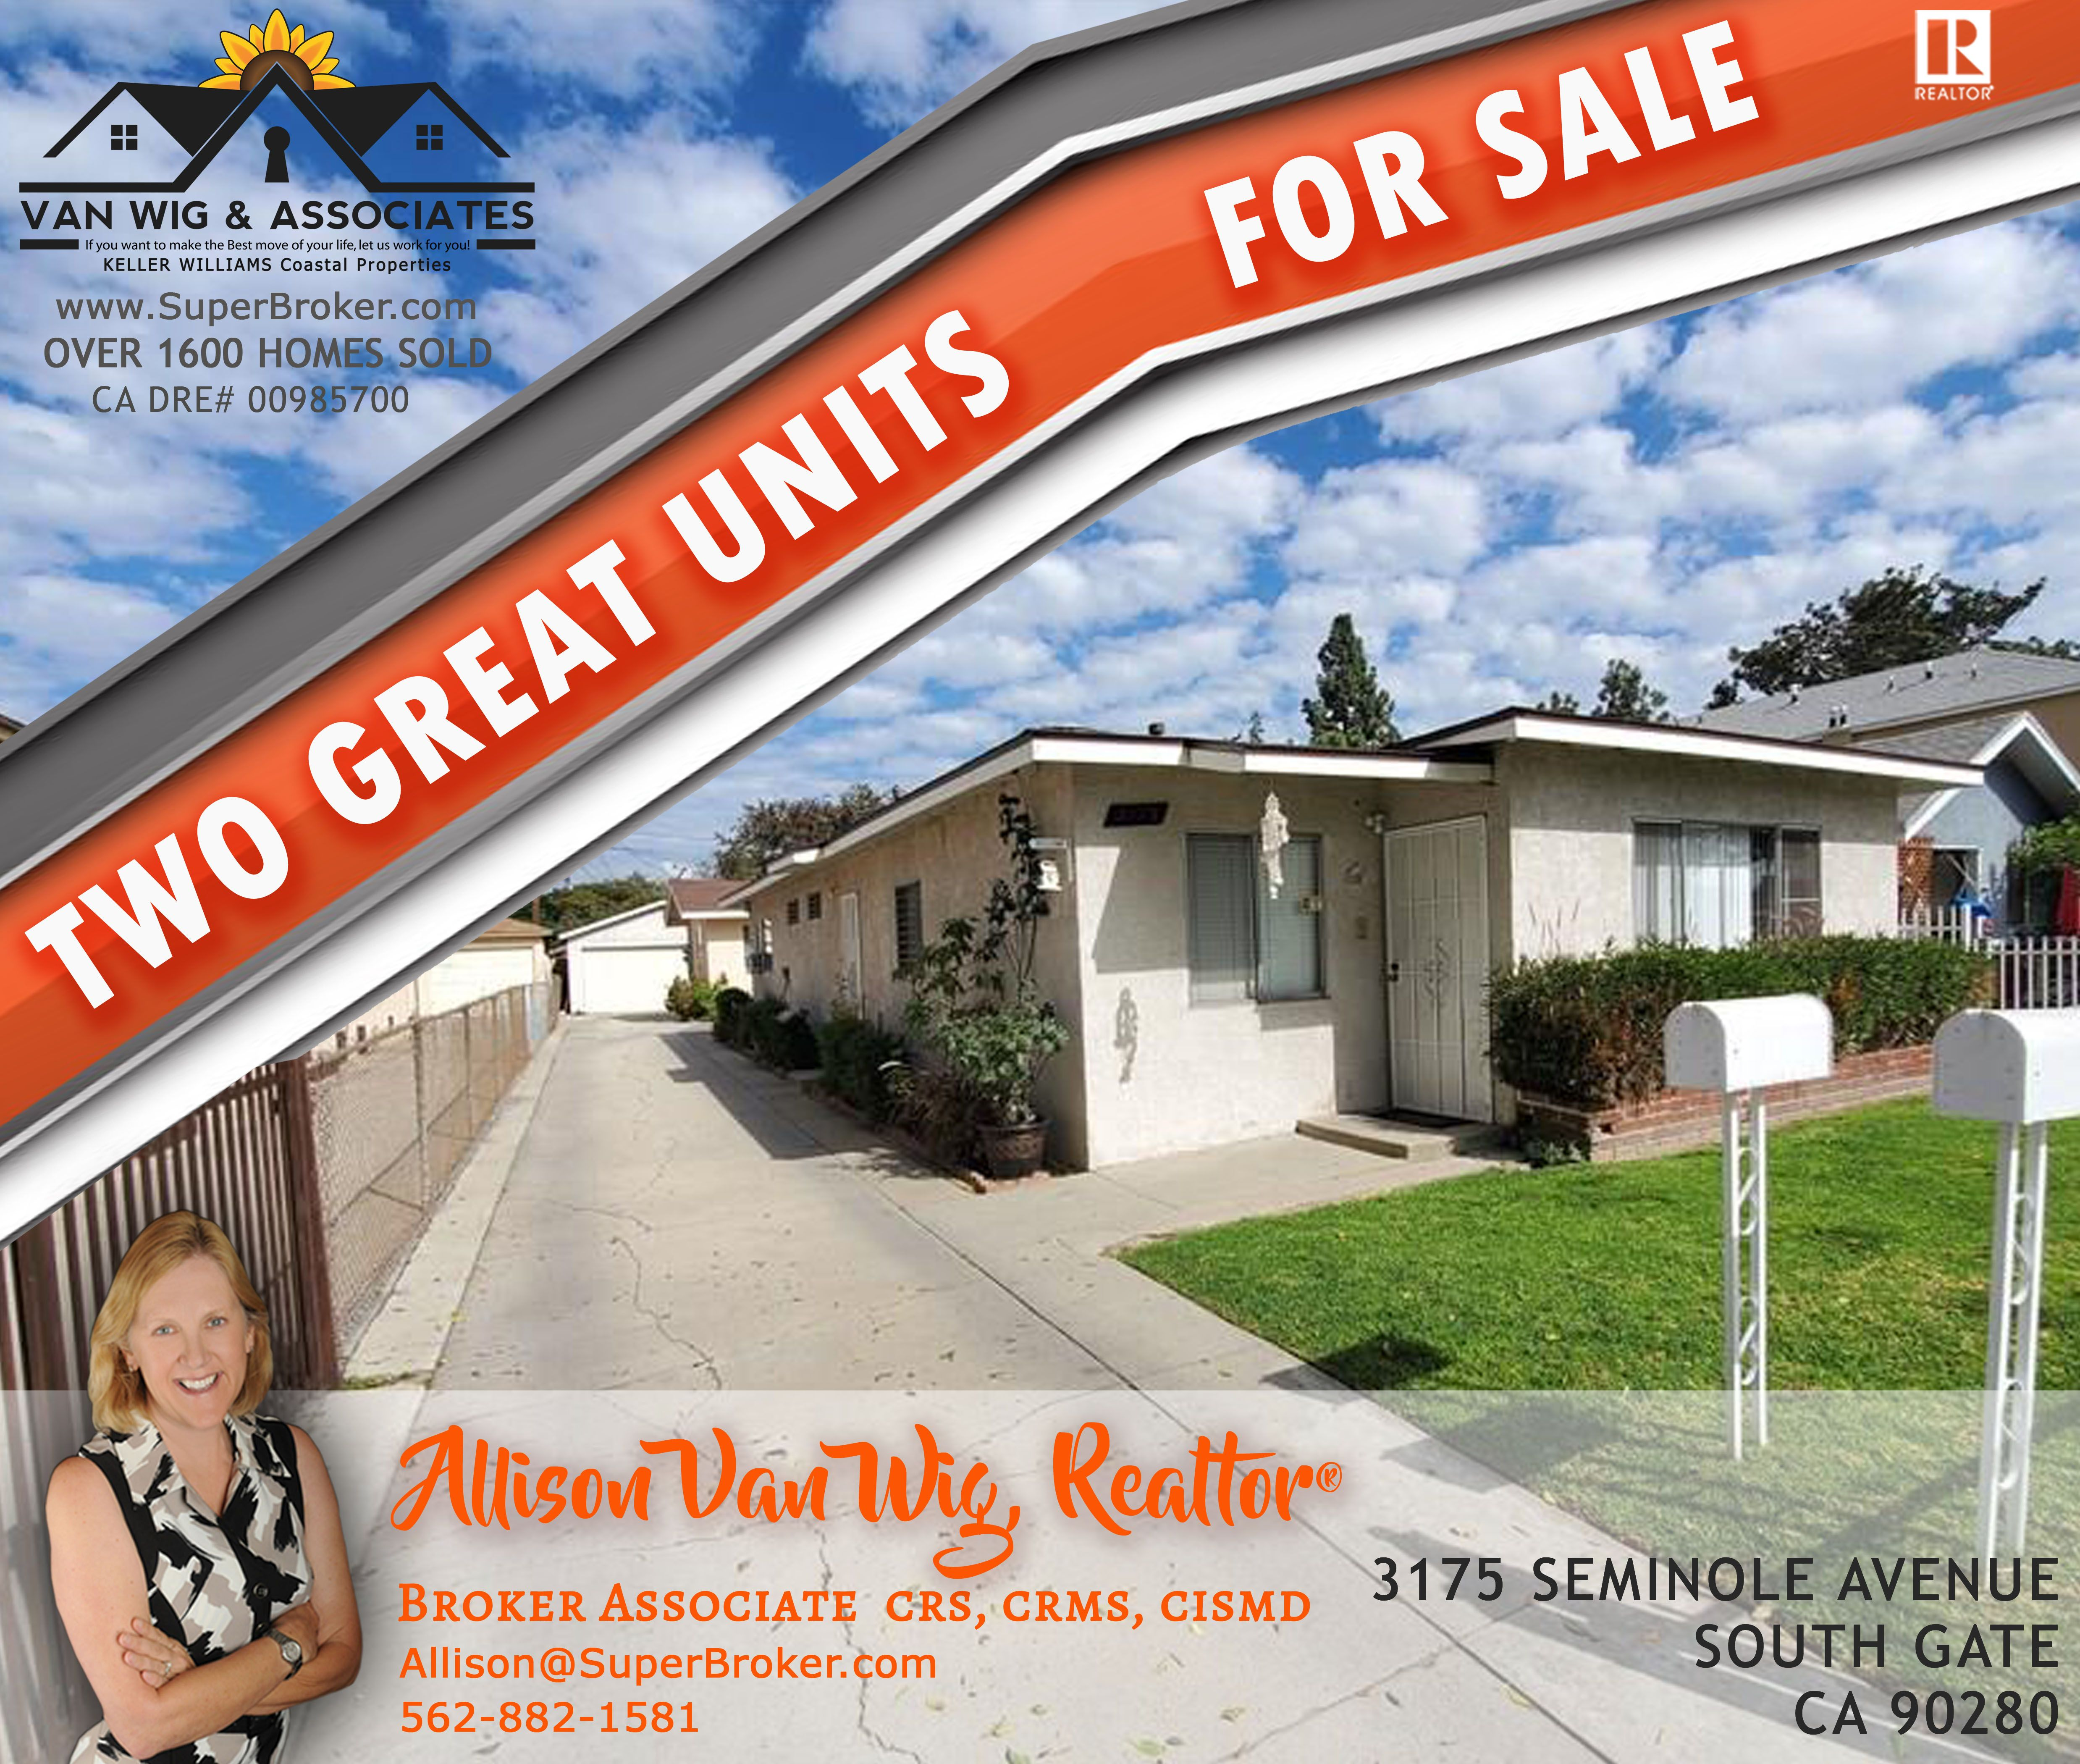 2 GREAT UNITS FOR SALE! LIVE IN ONE & RENT OUT THE OTHER